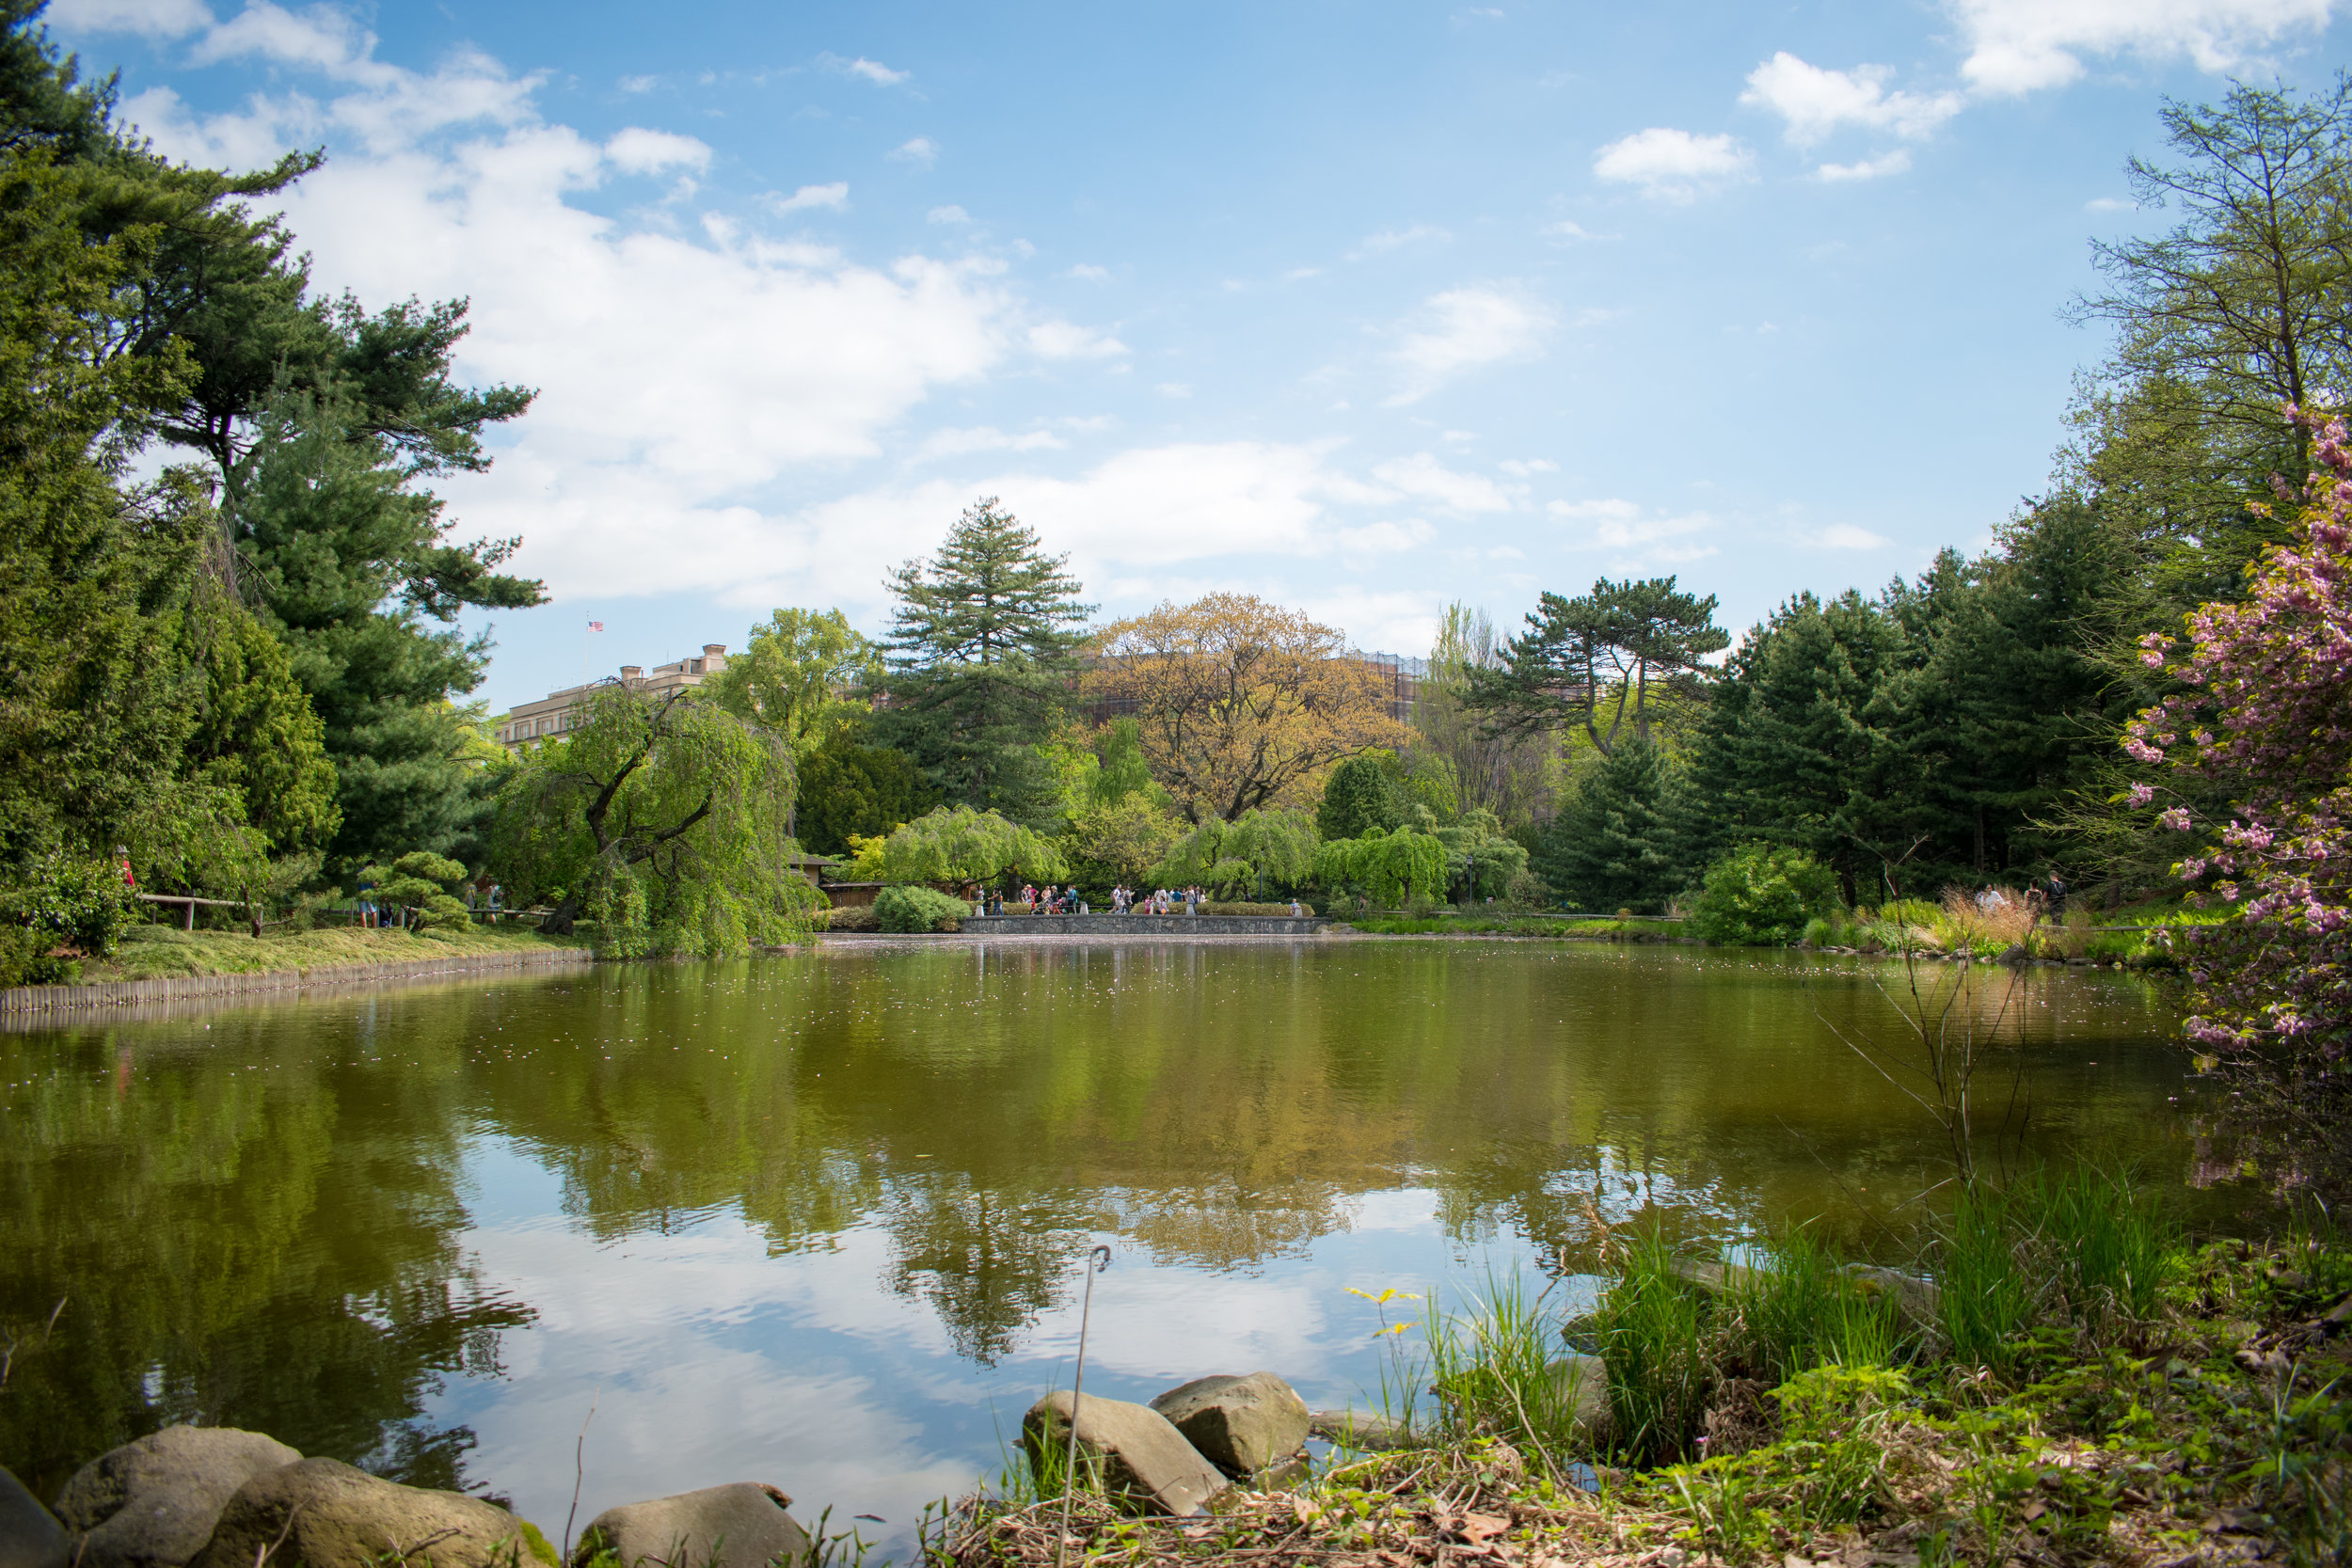 The Brooklyn Botanical Garden Lake, New York